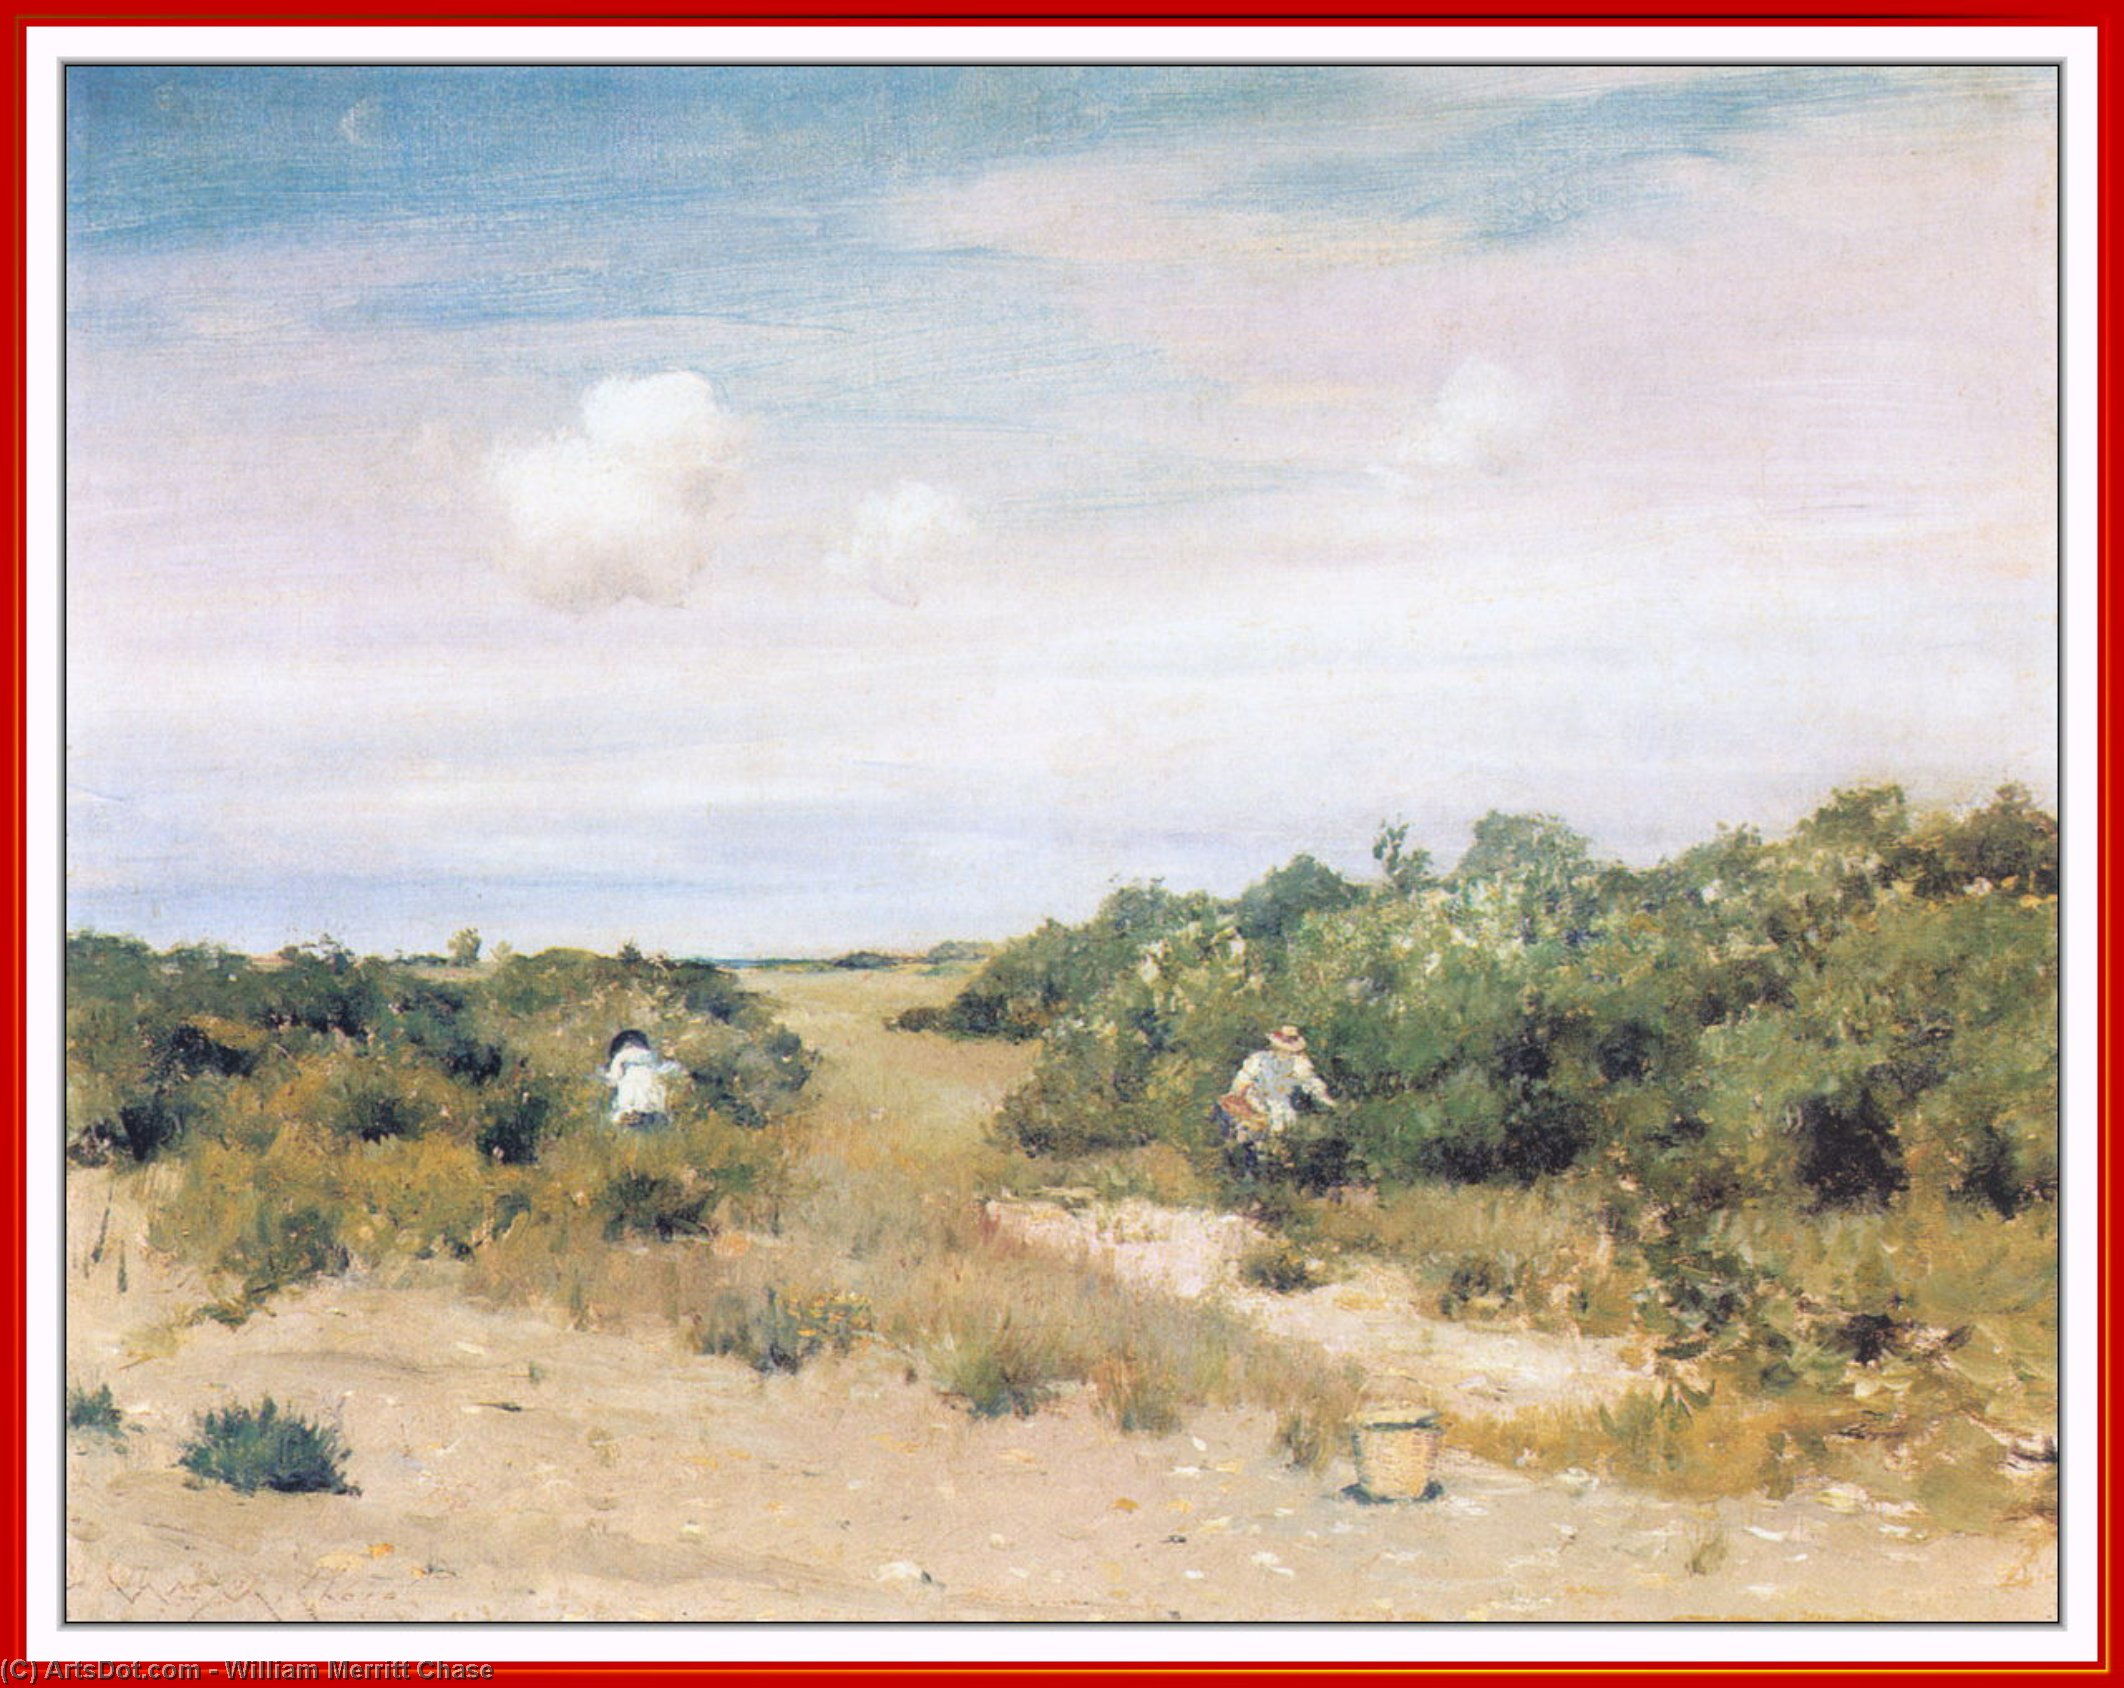 辛纳科克山 长岛  通过 William Merritt Chase (1849-1916, United States)